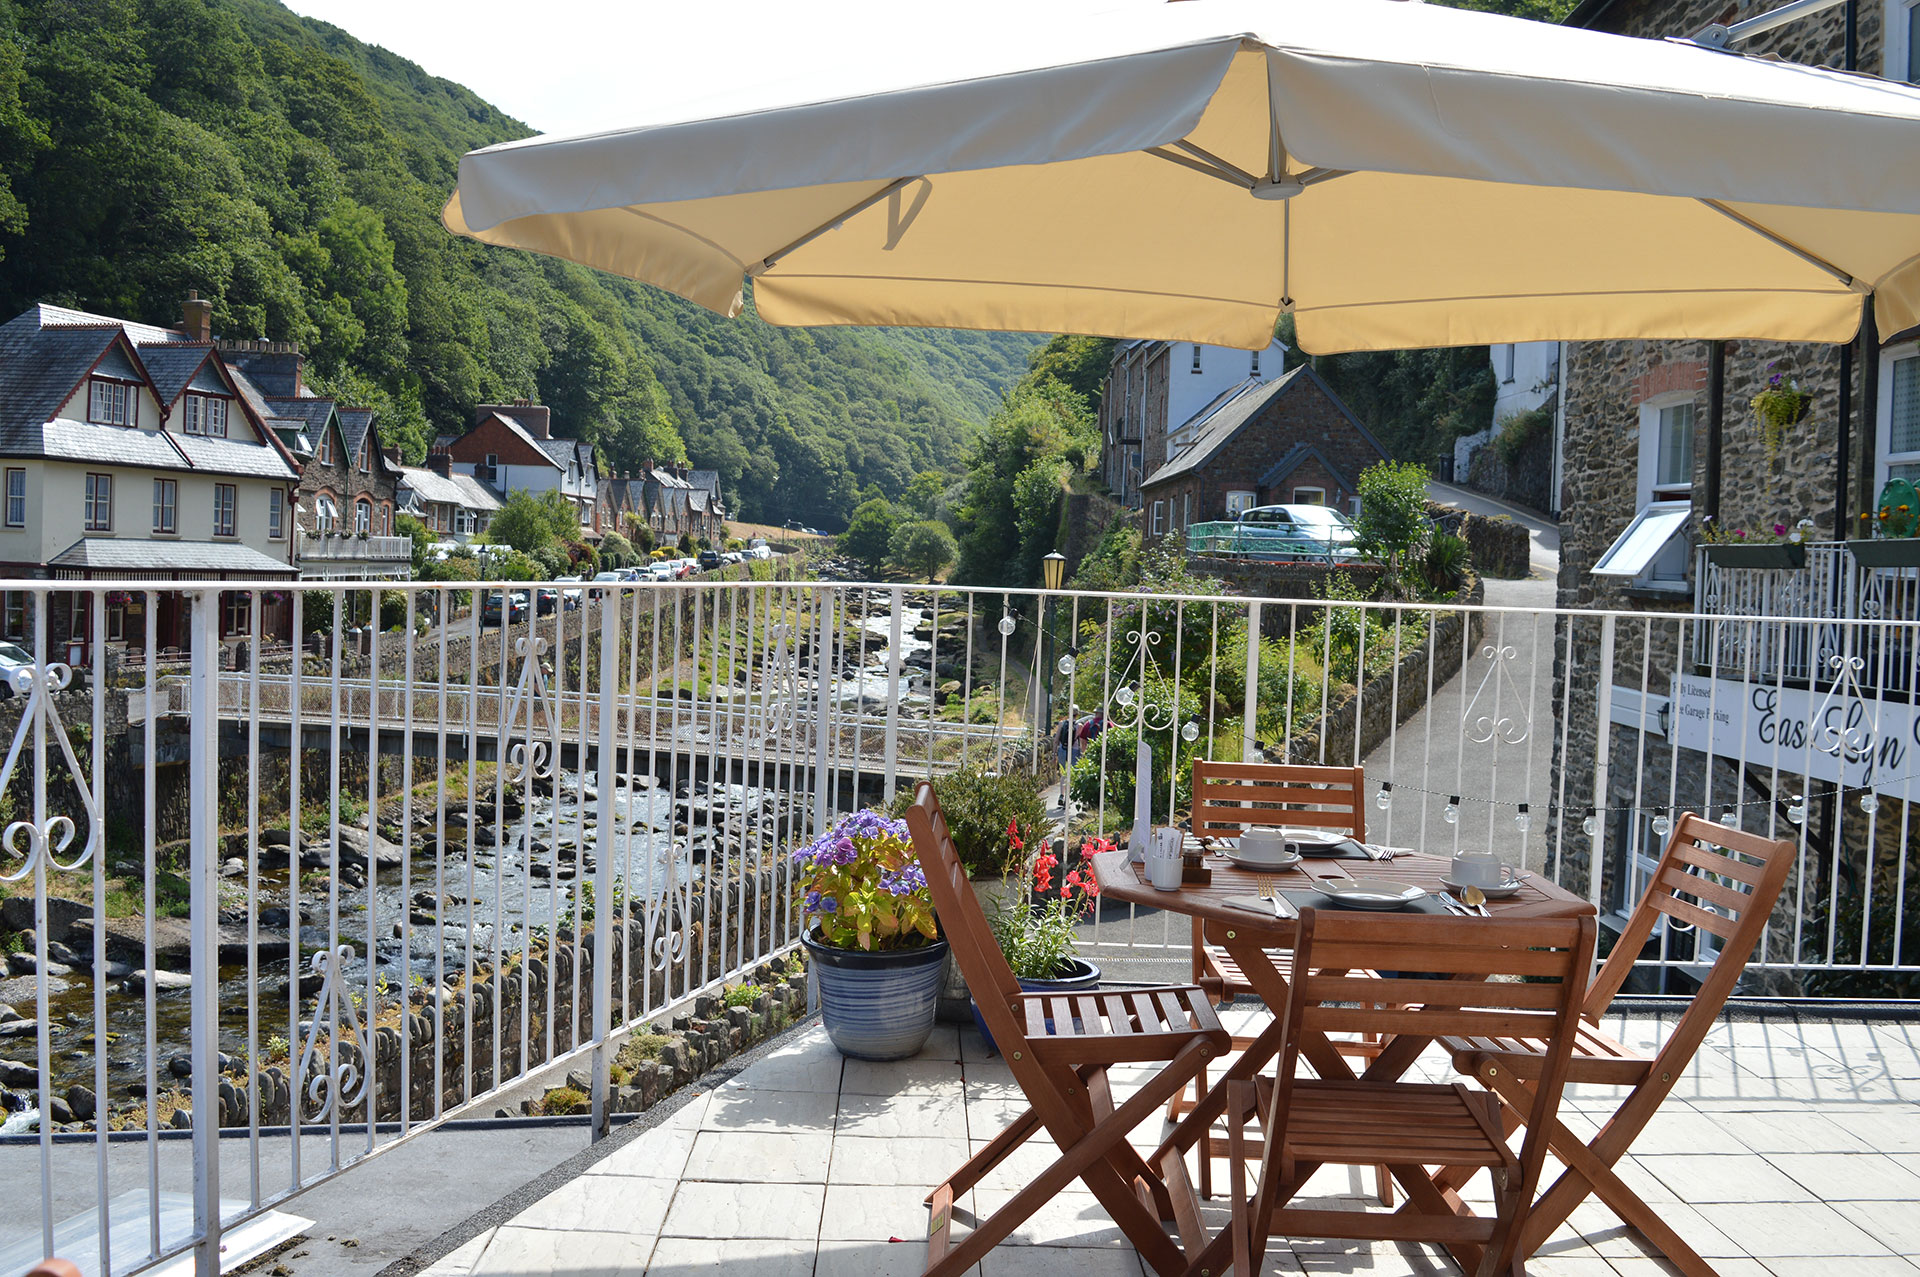 East Lyn House, Bed and Breakfast, breakfast on the riverside terrace